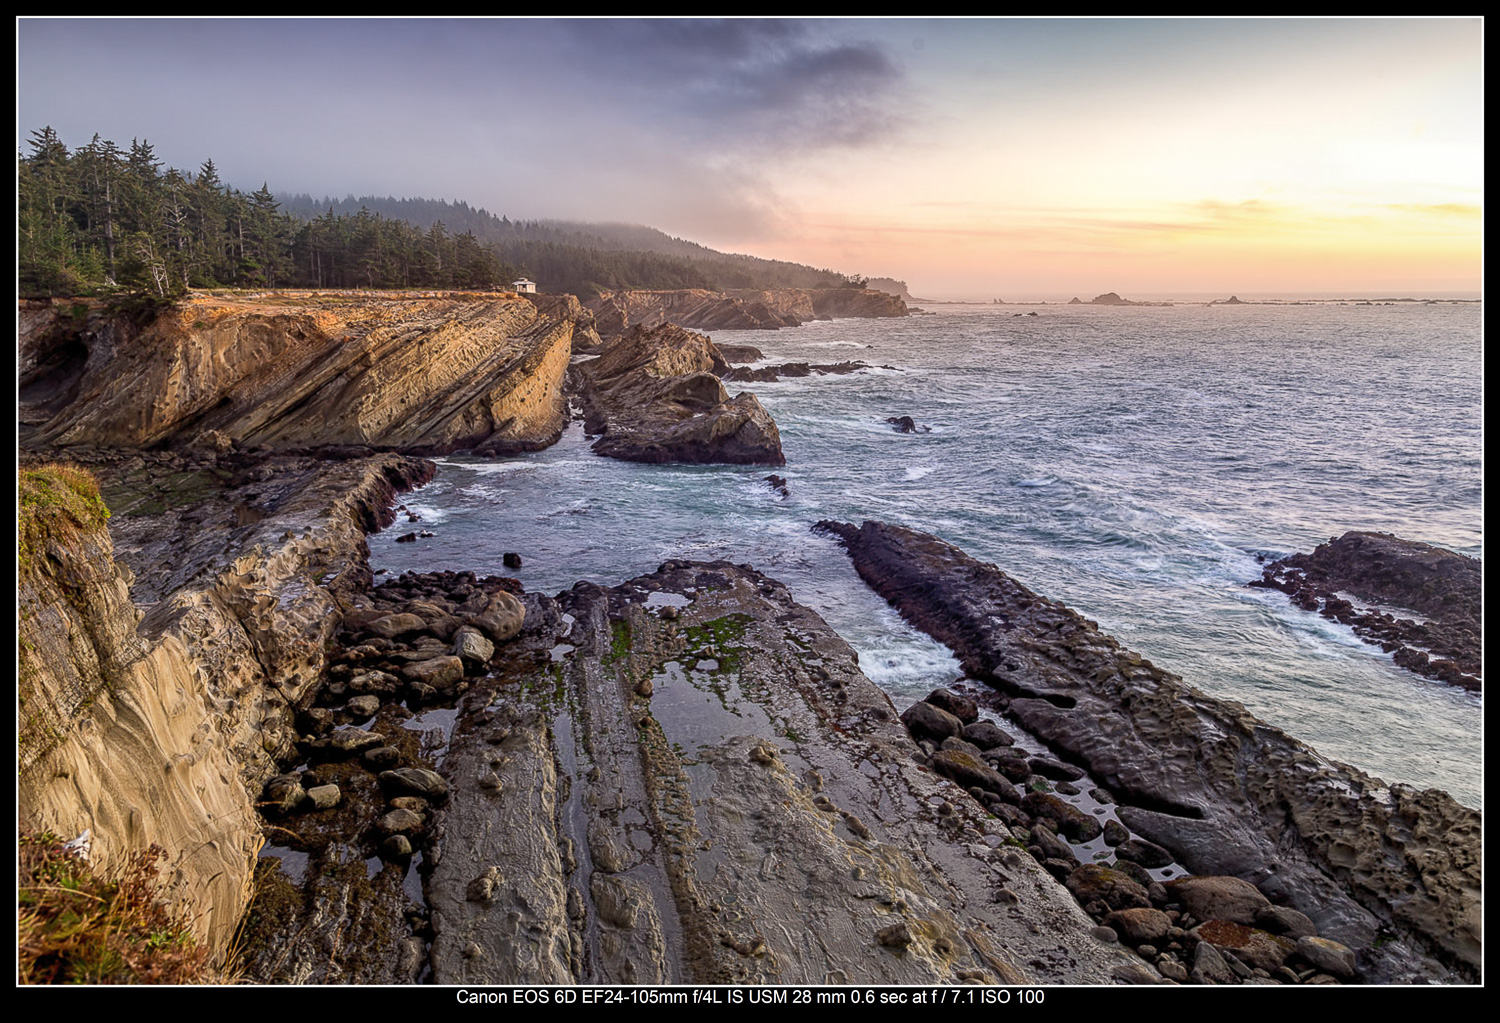 Seaside cliffs near Cape Arago, Oregon.